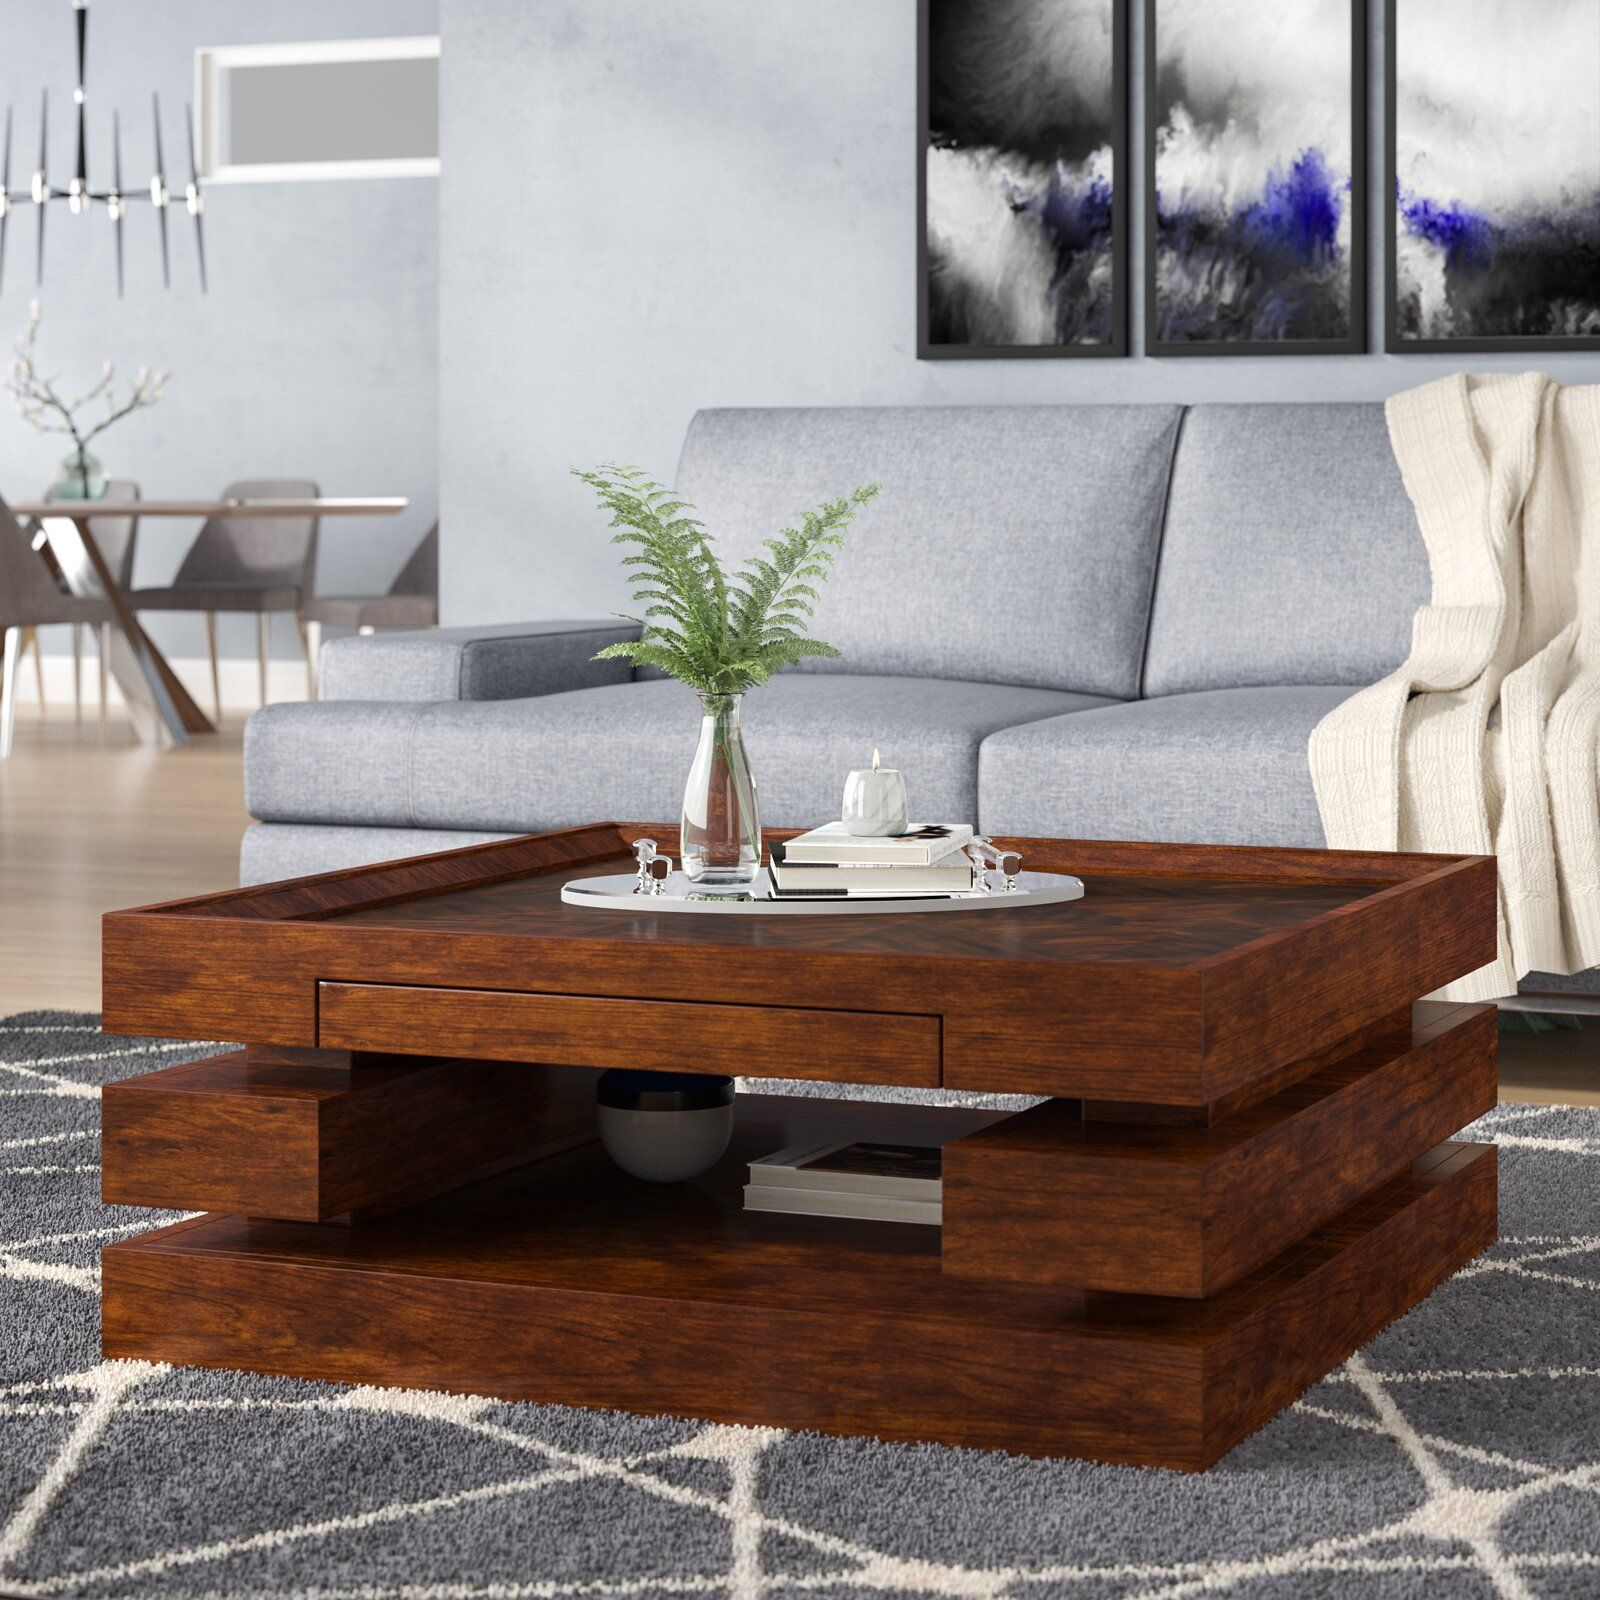 Ivy Bronx Giardina Coffee Table  Wayfair  Living room table